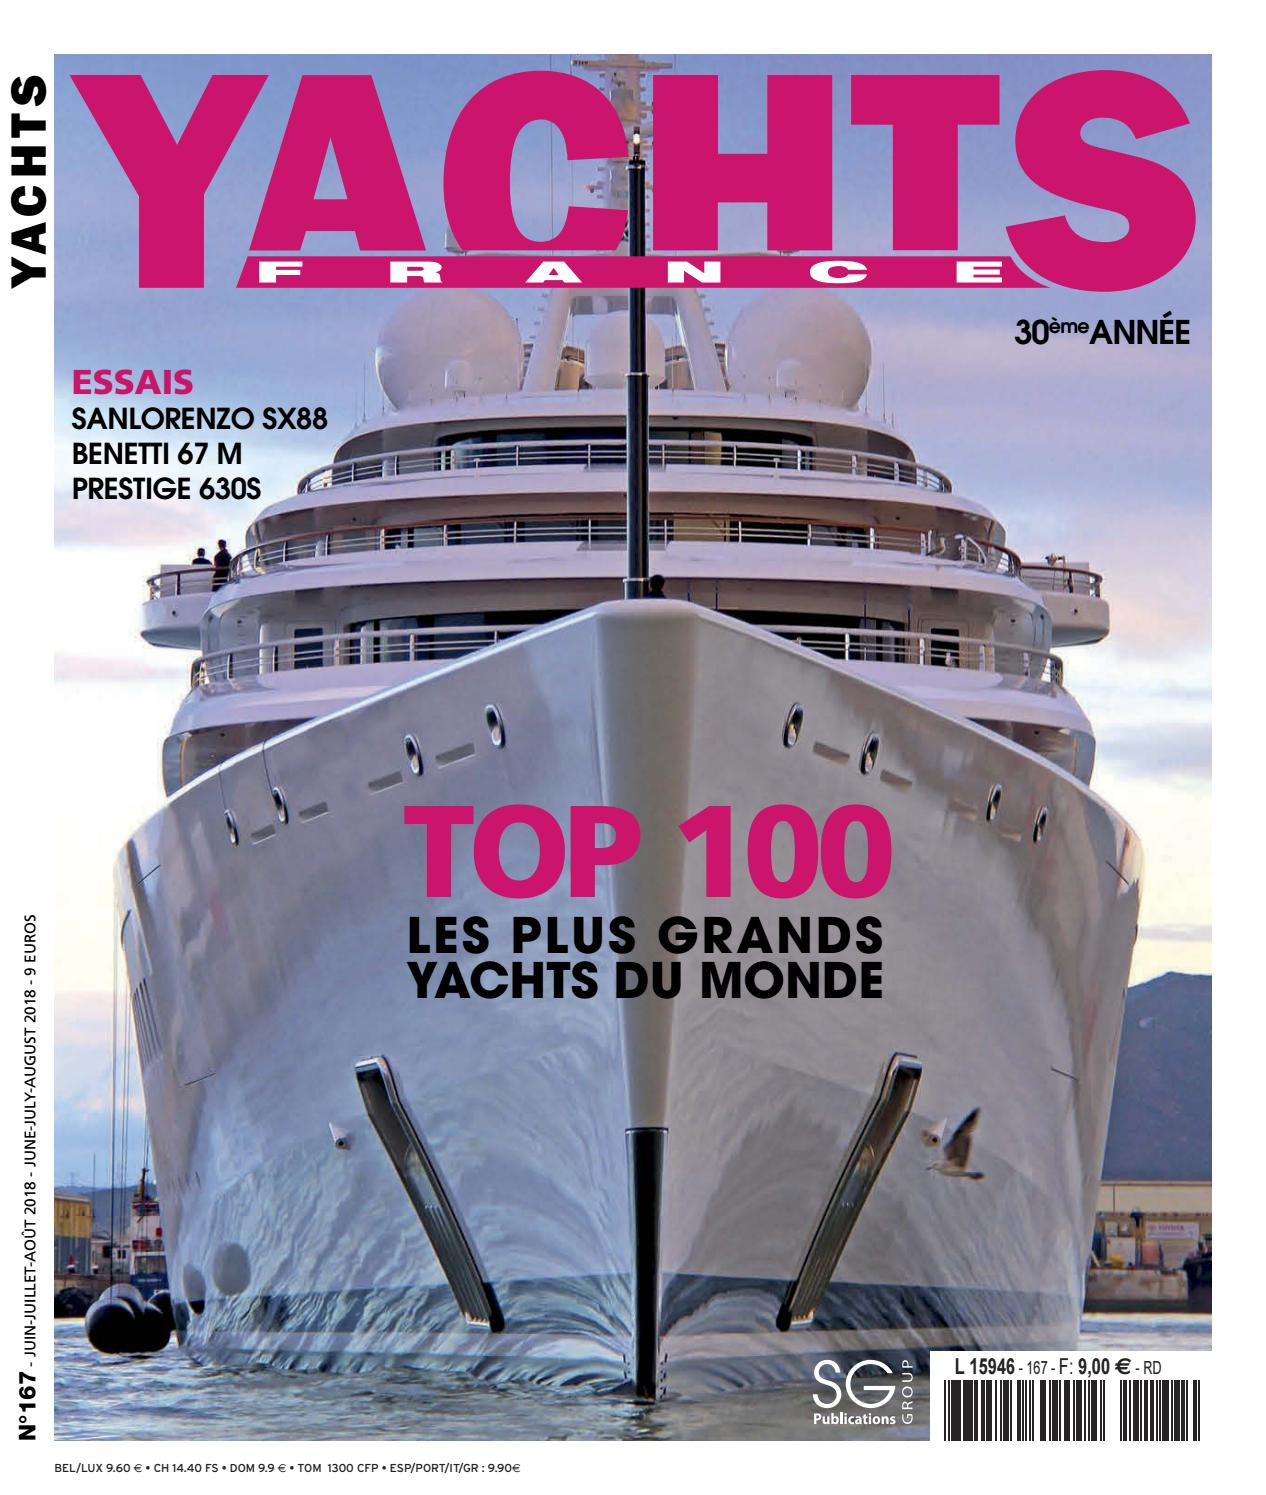 Yachts France N 167 By Sg Publications Issuu